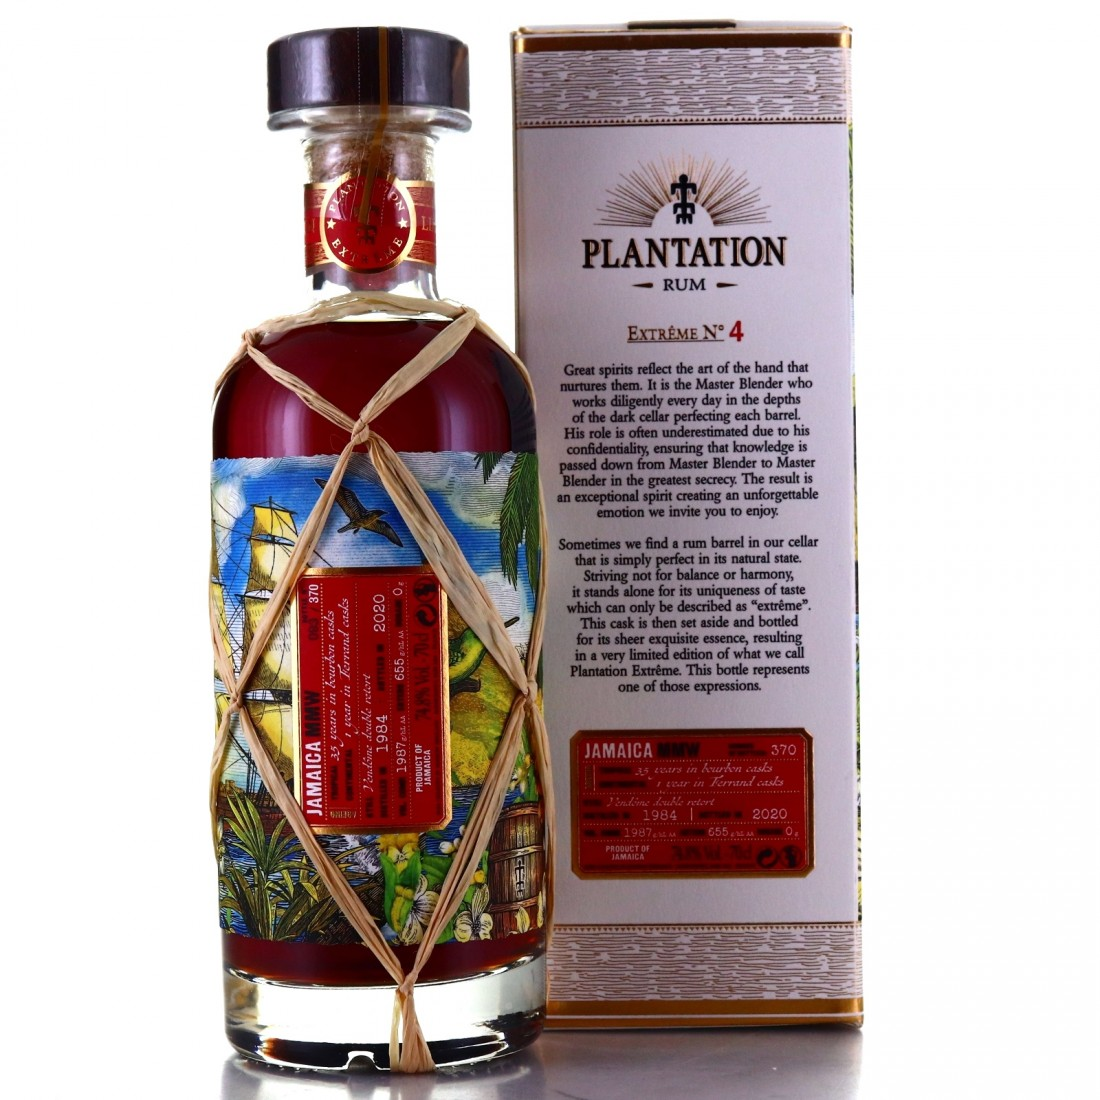 Clarendon MMW 1984 Plantation 36 Year Old Extreme No.4 / France